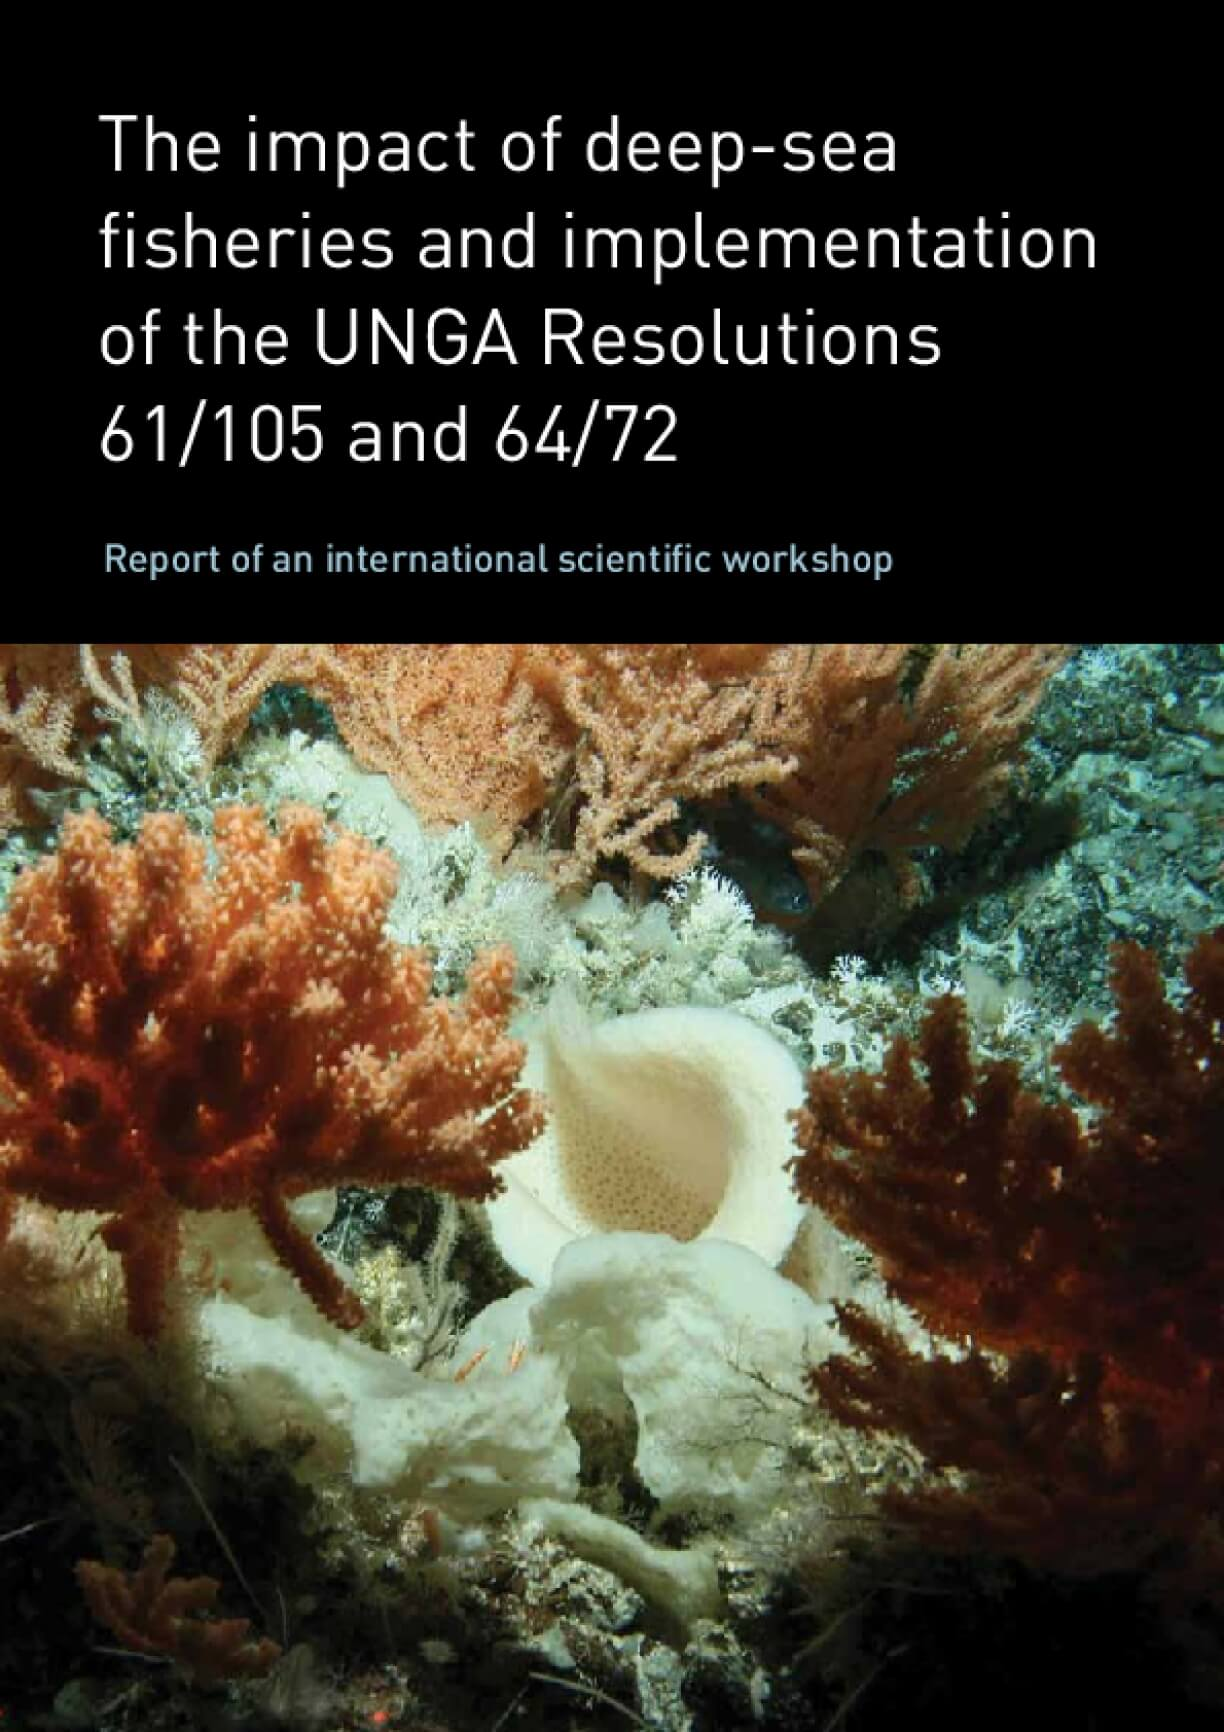 The impact of deep-sea fisheries and implementation of the UNGA Resolutions 61/105 and 64/72. Report of an international scientific workshop